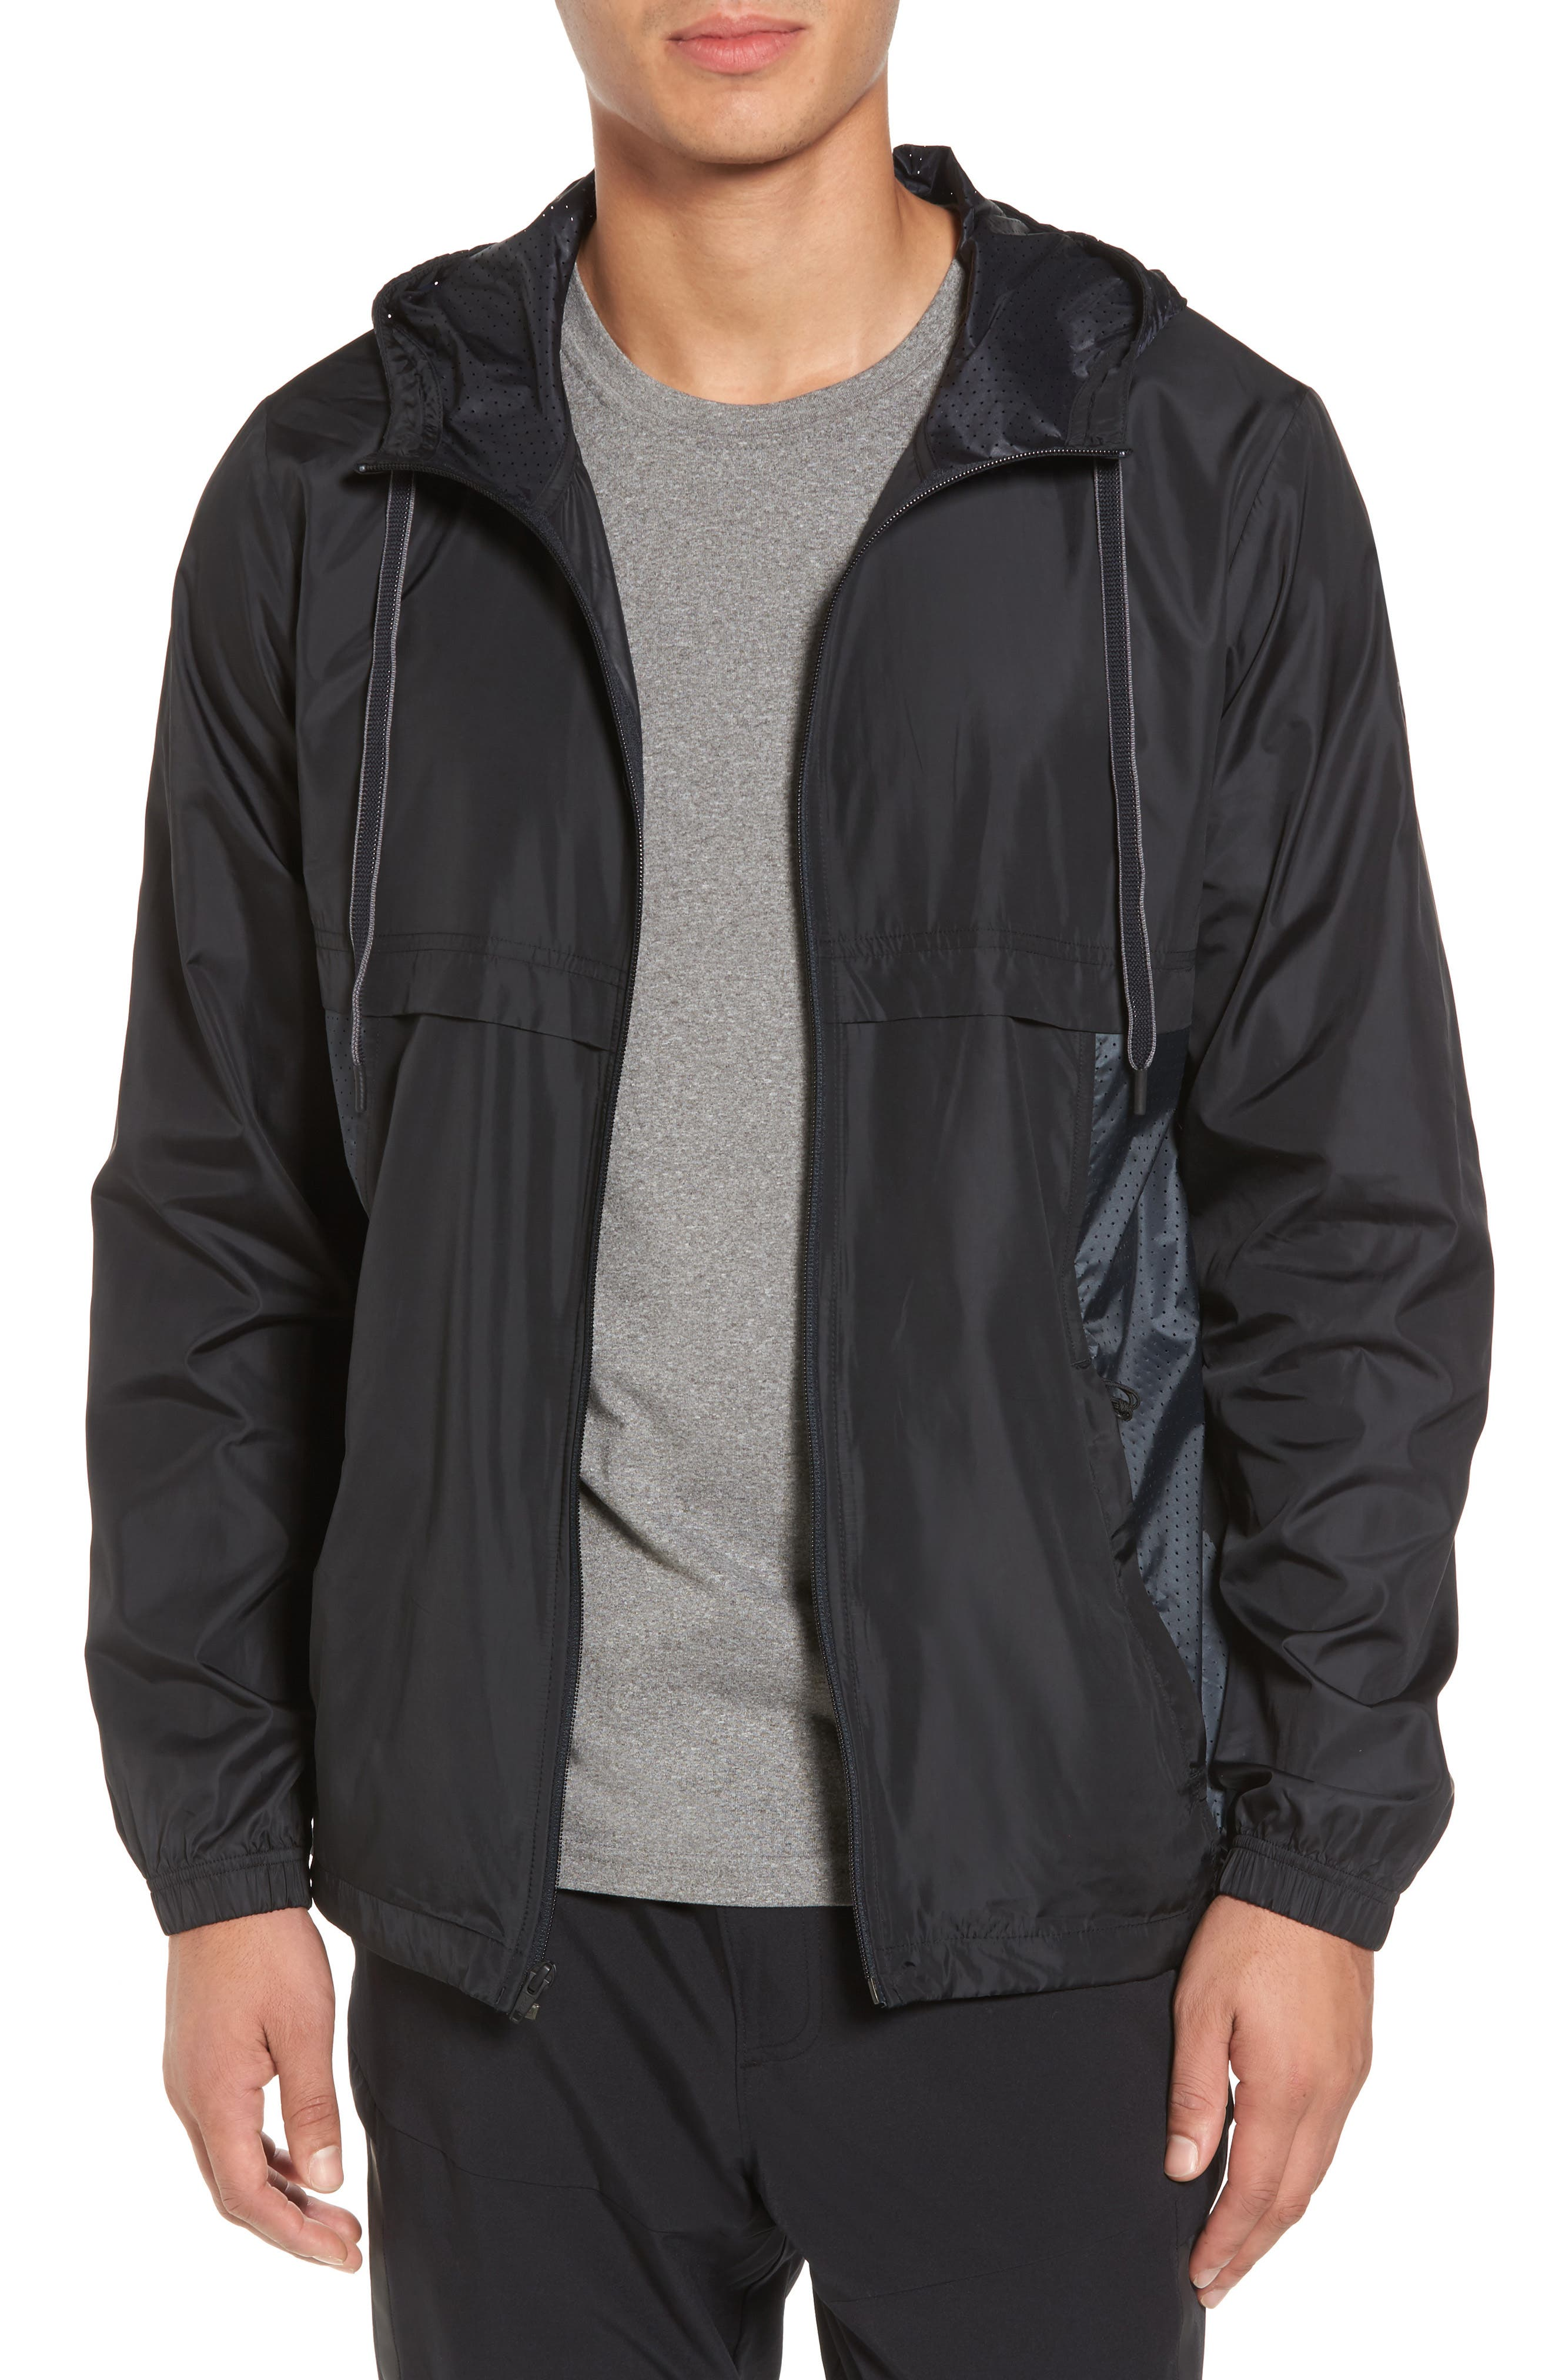 Sportstyle Windbreaker,                         Main,                         color, Black / Overcast Grey